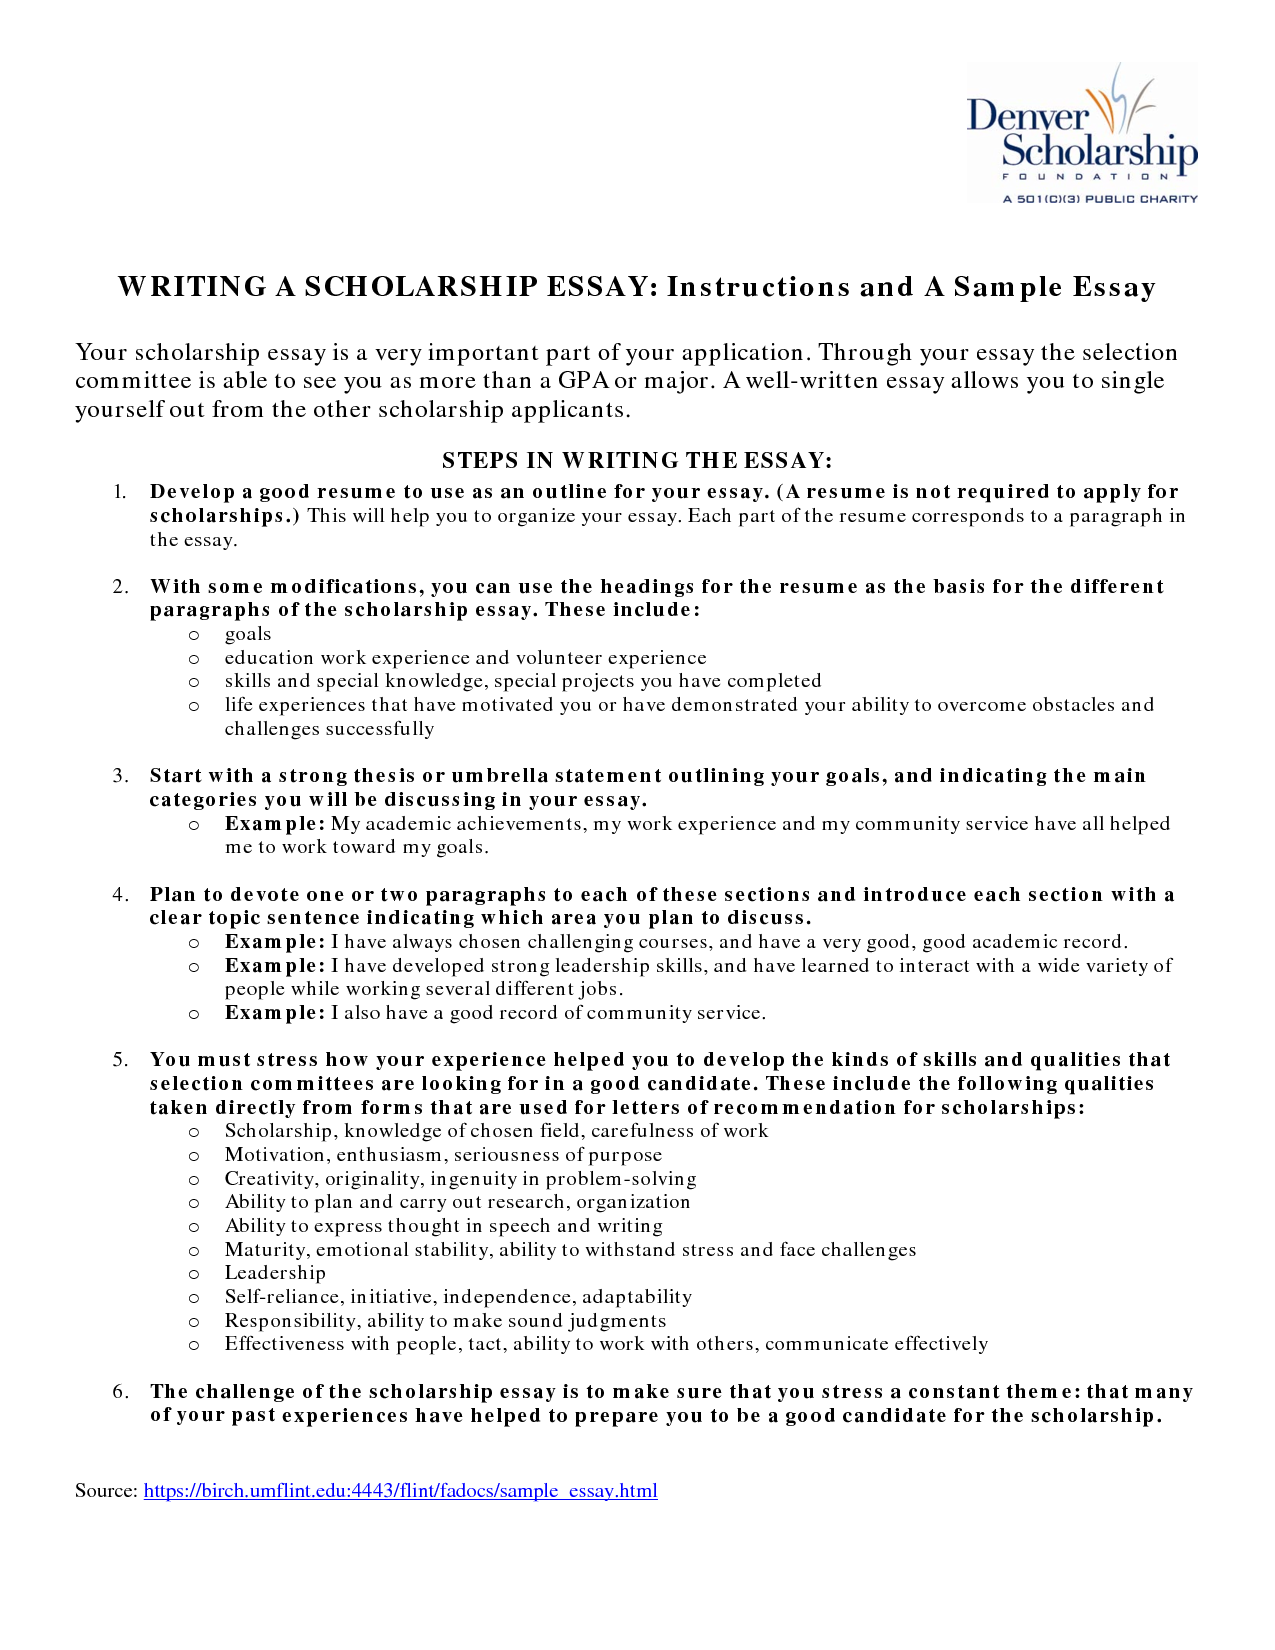 023 Essay Example What To Write For Scholarship About Yourself On Tips Writing Effective Essays Awesome A How That Stands Out In Good Full